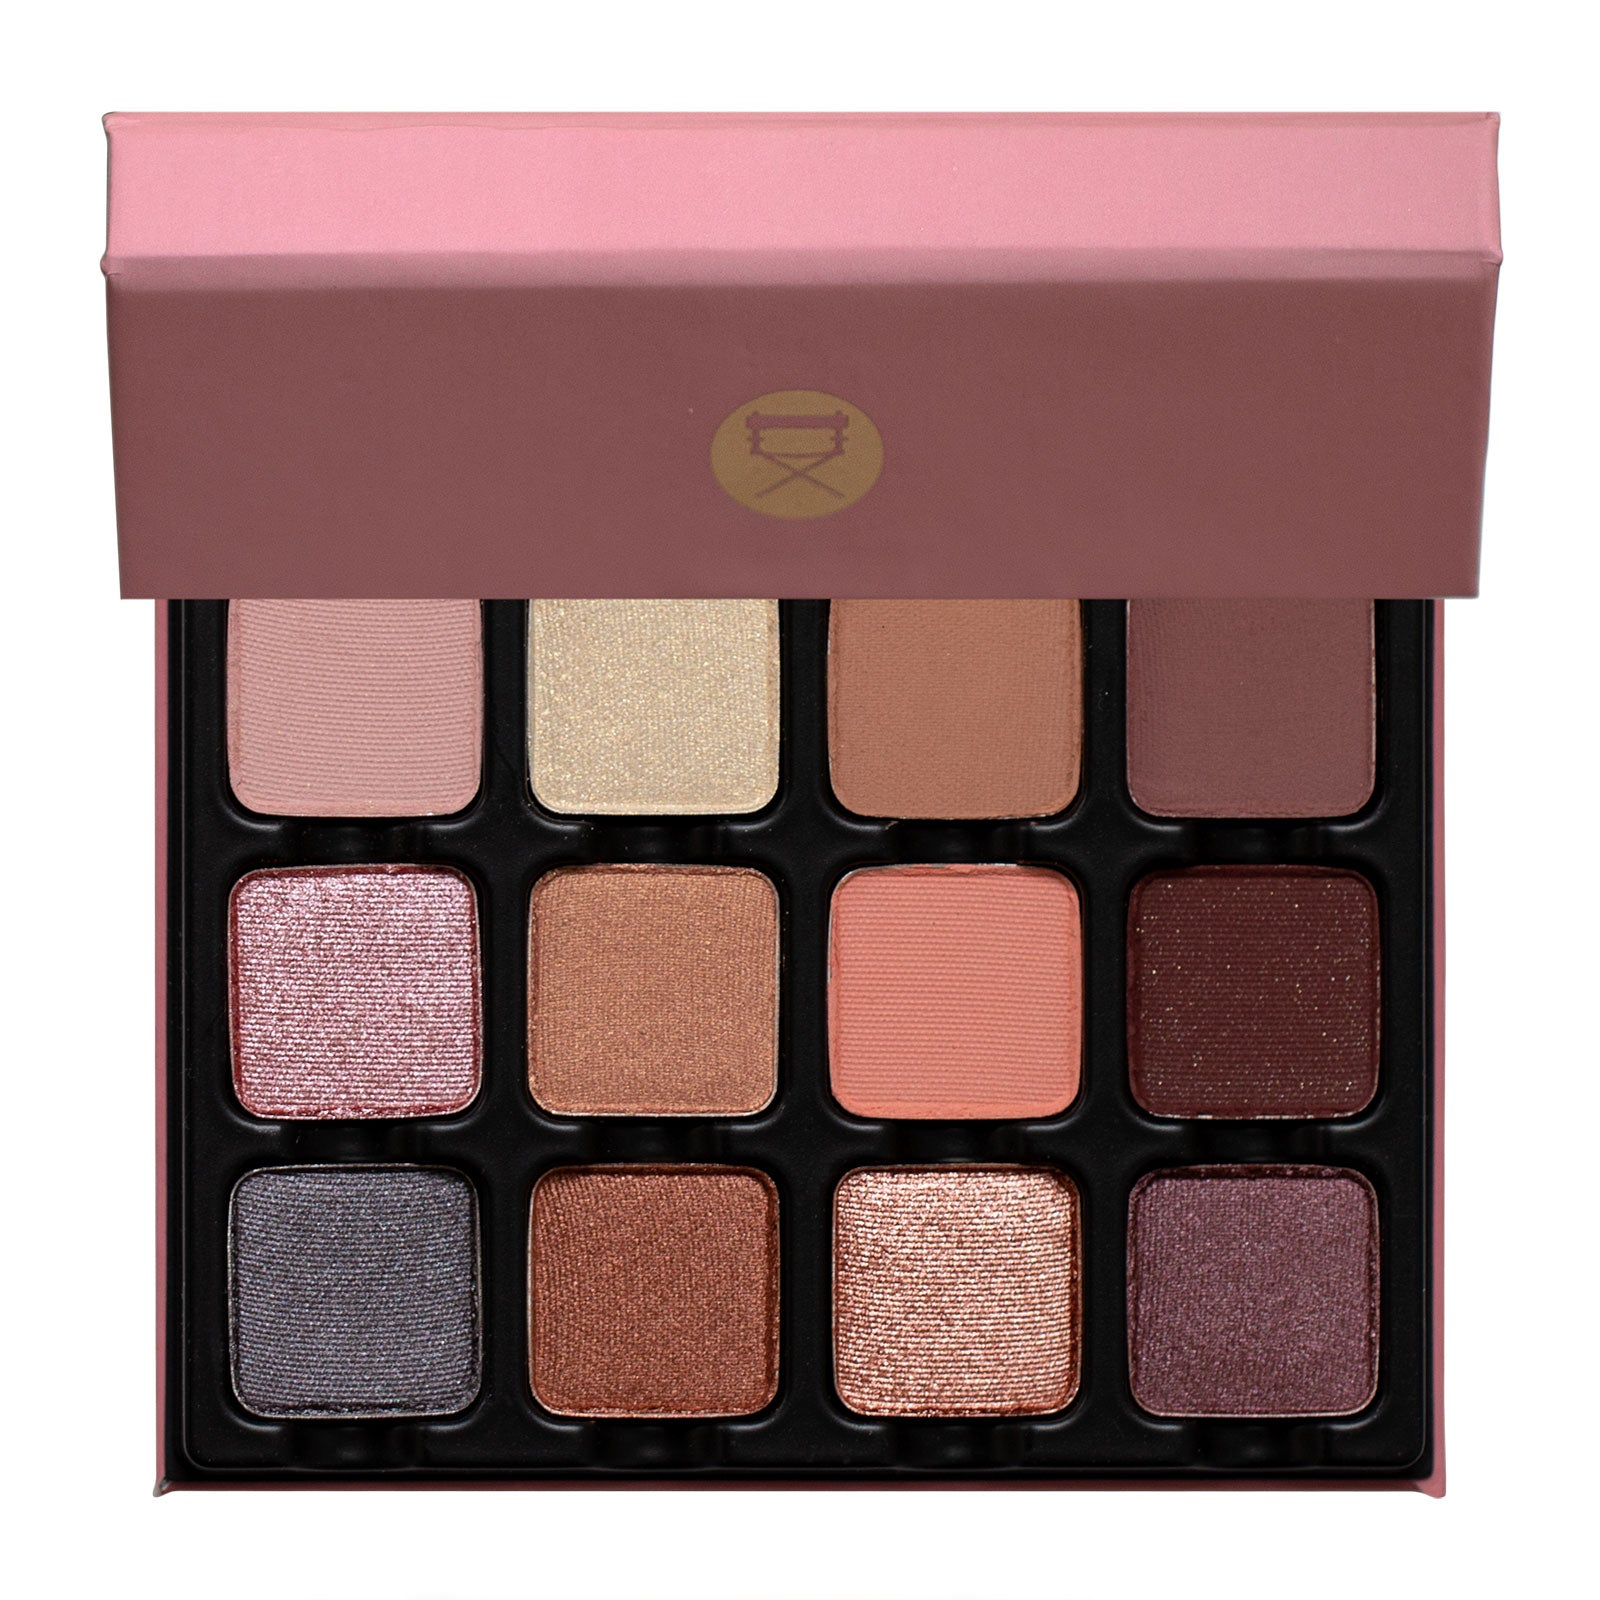 Viseart Paris Edit Eyeshadow Palette 12g